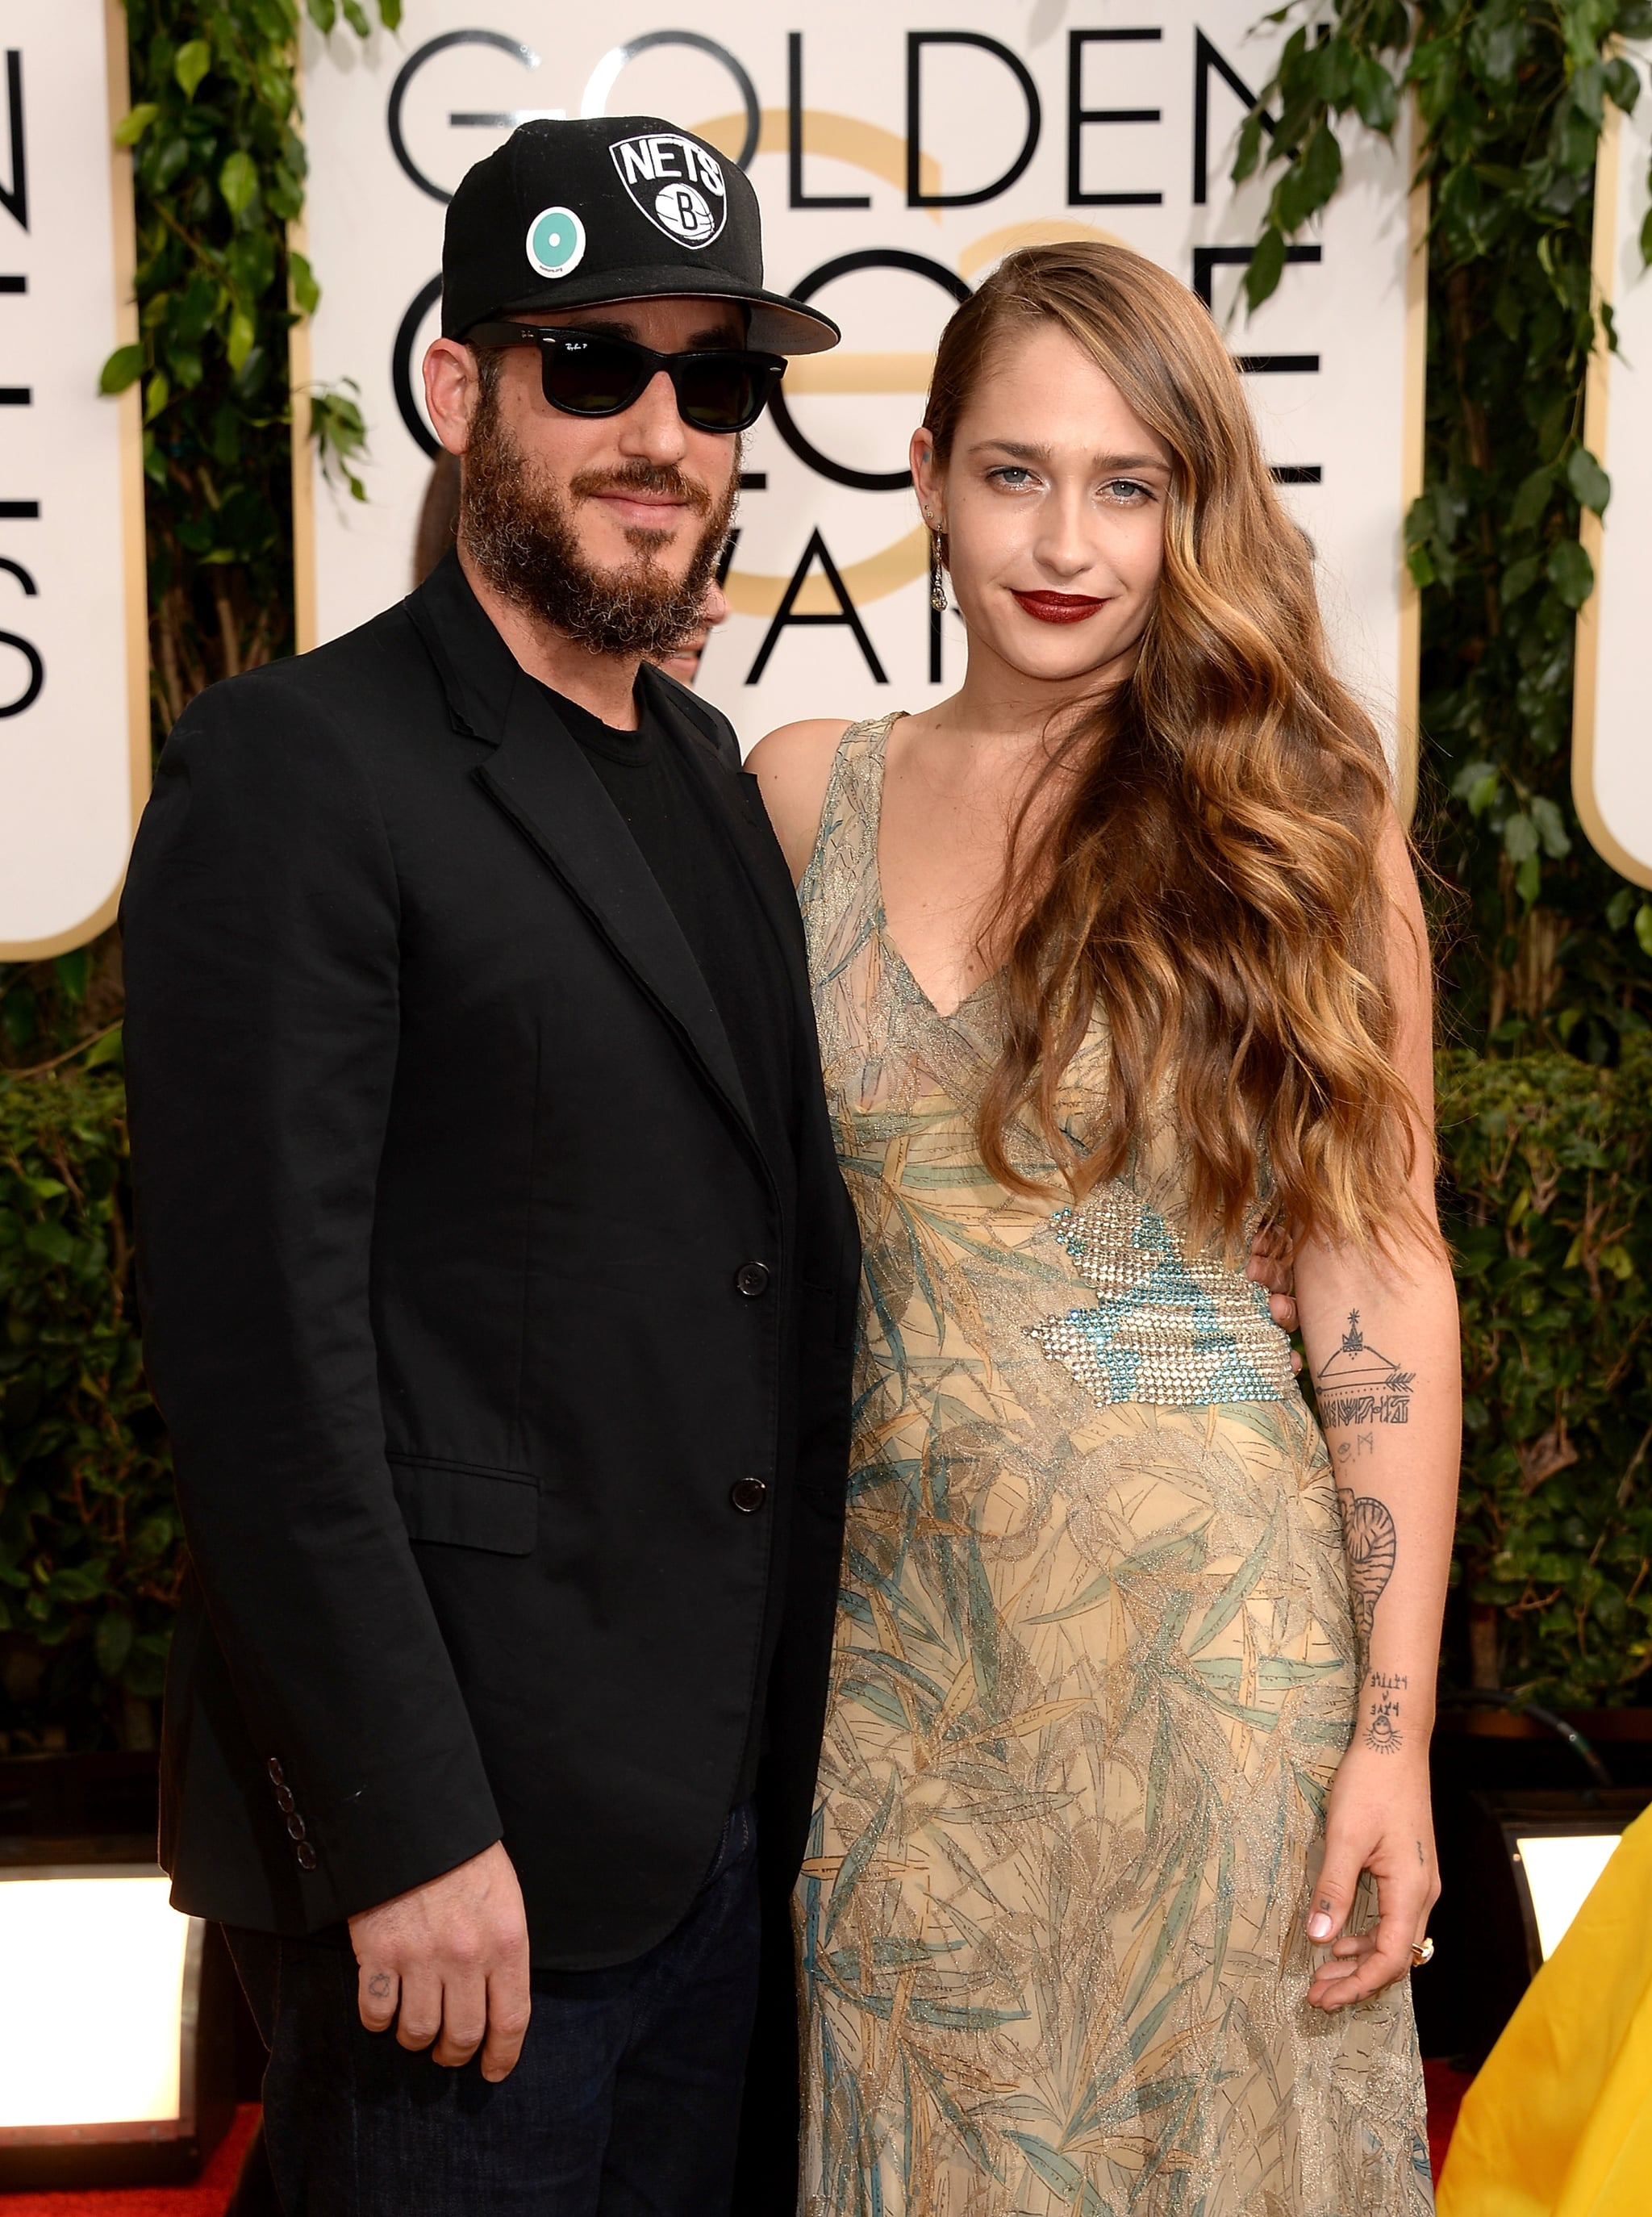 Jemima Kirke and her husband, Michael Mosberg, attended the Golden Globes.